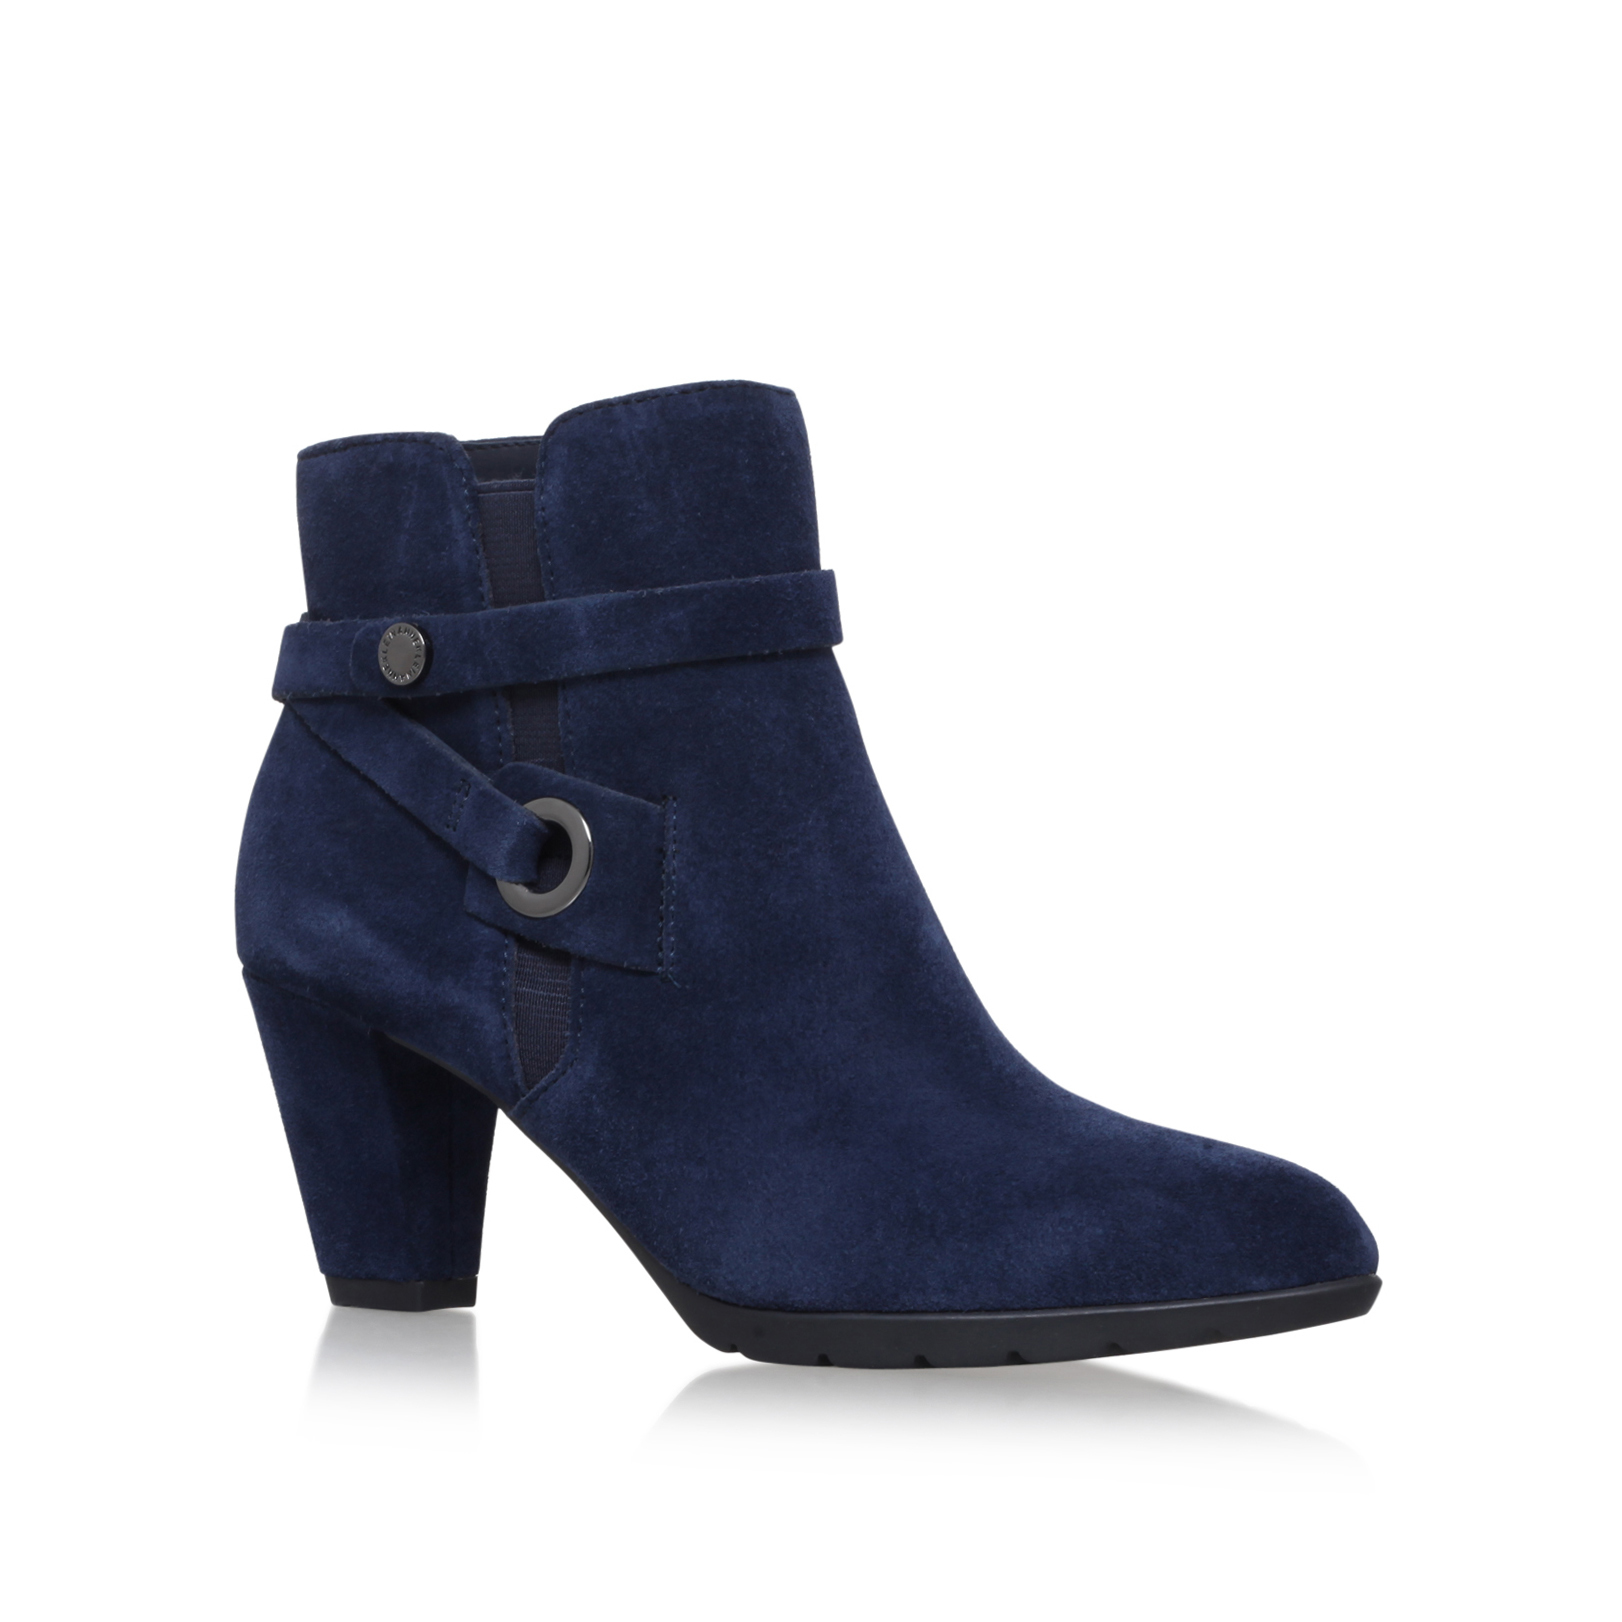 factory authentic biggest discount super popular CHELSEY - ANNE KLEIN Boots